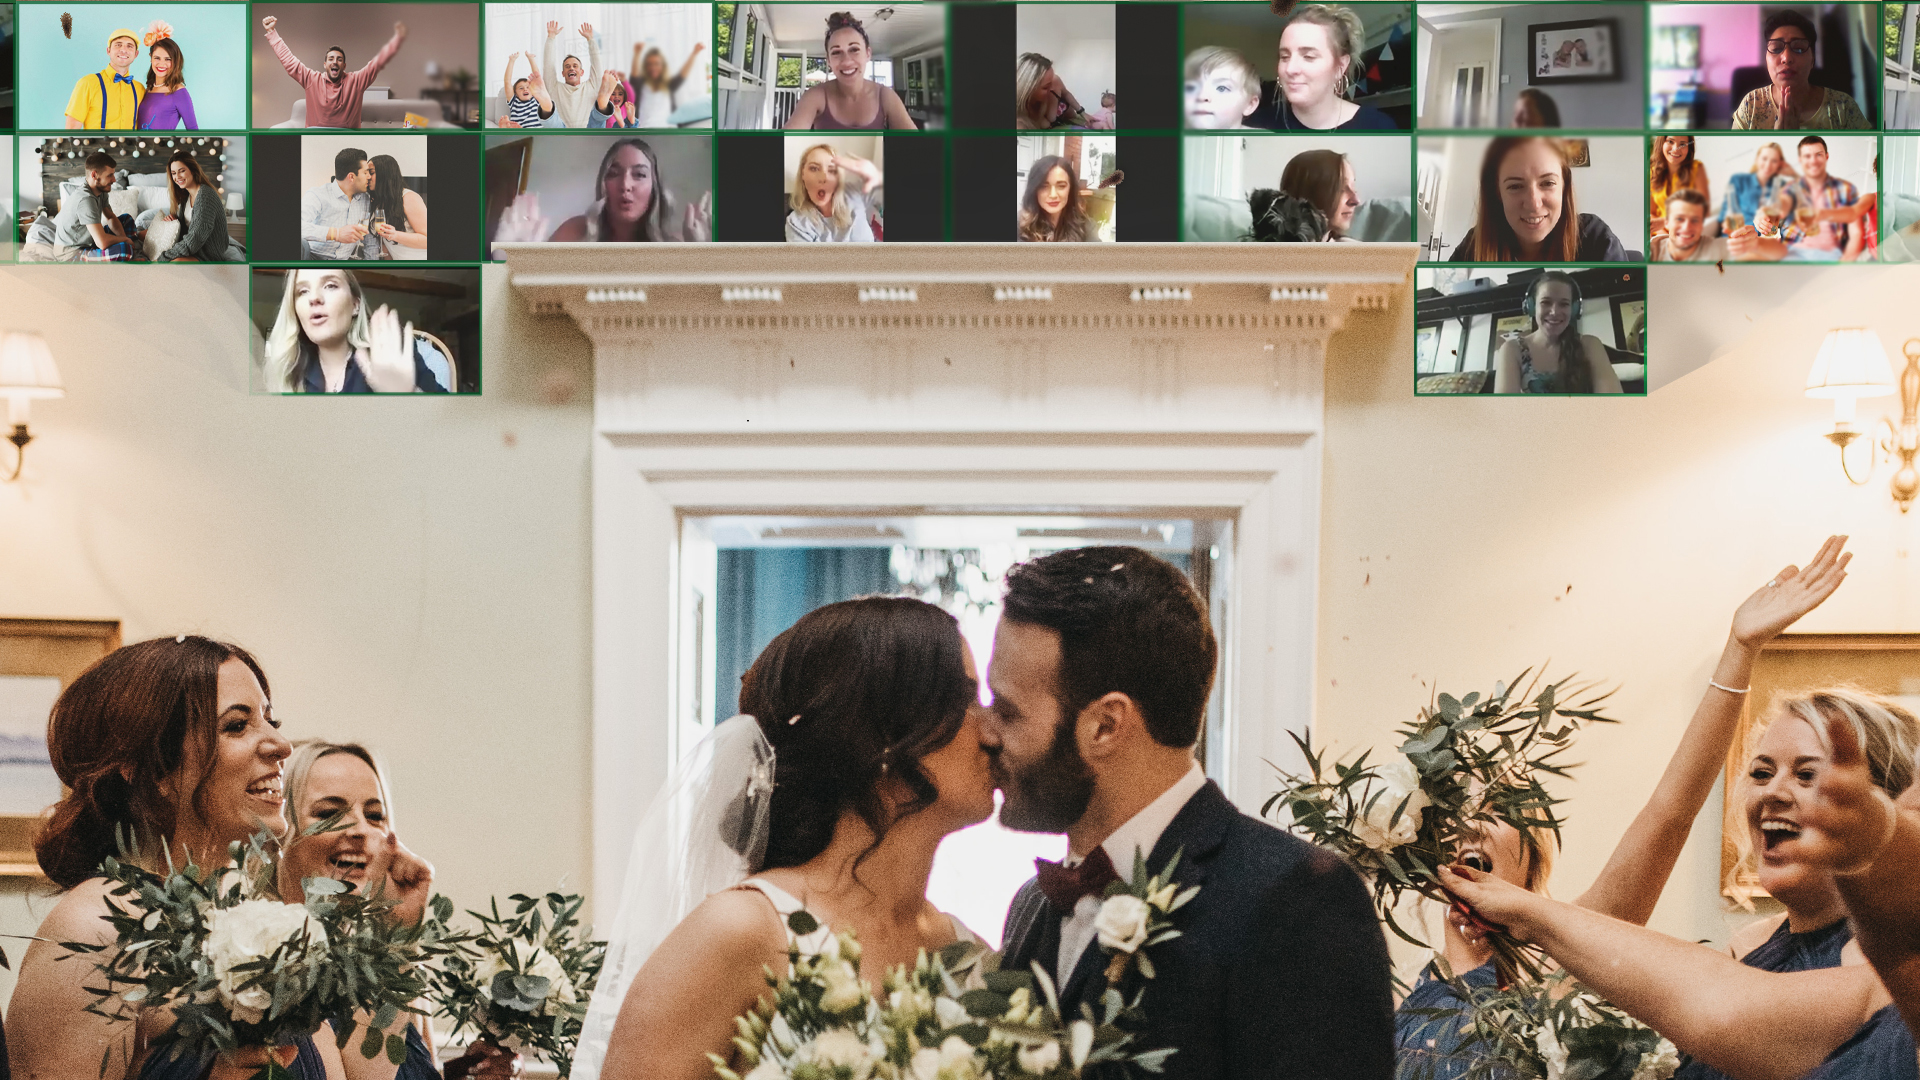 Transforming the wedding experience for couples during COVID with the Virtual Wedding Wall